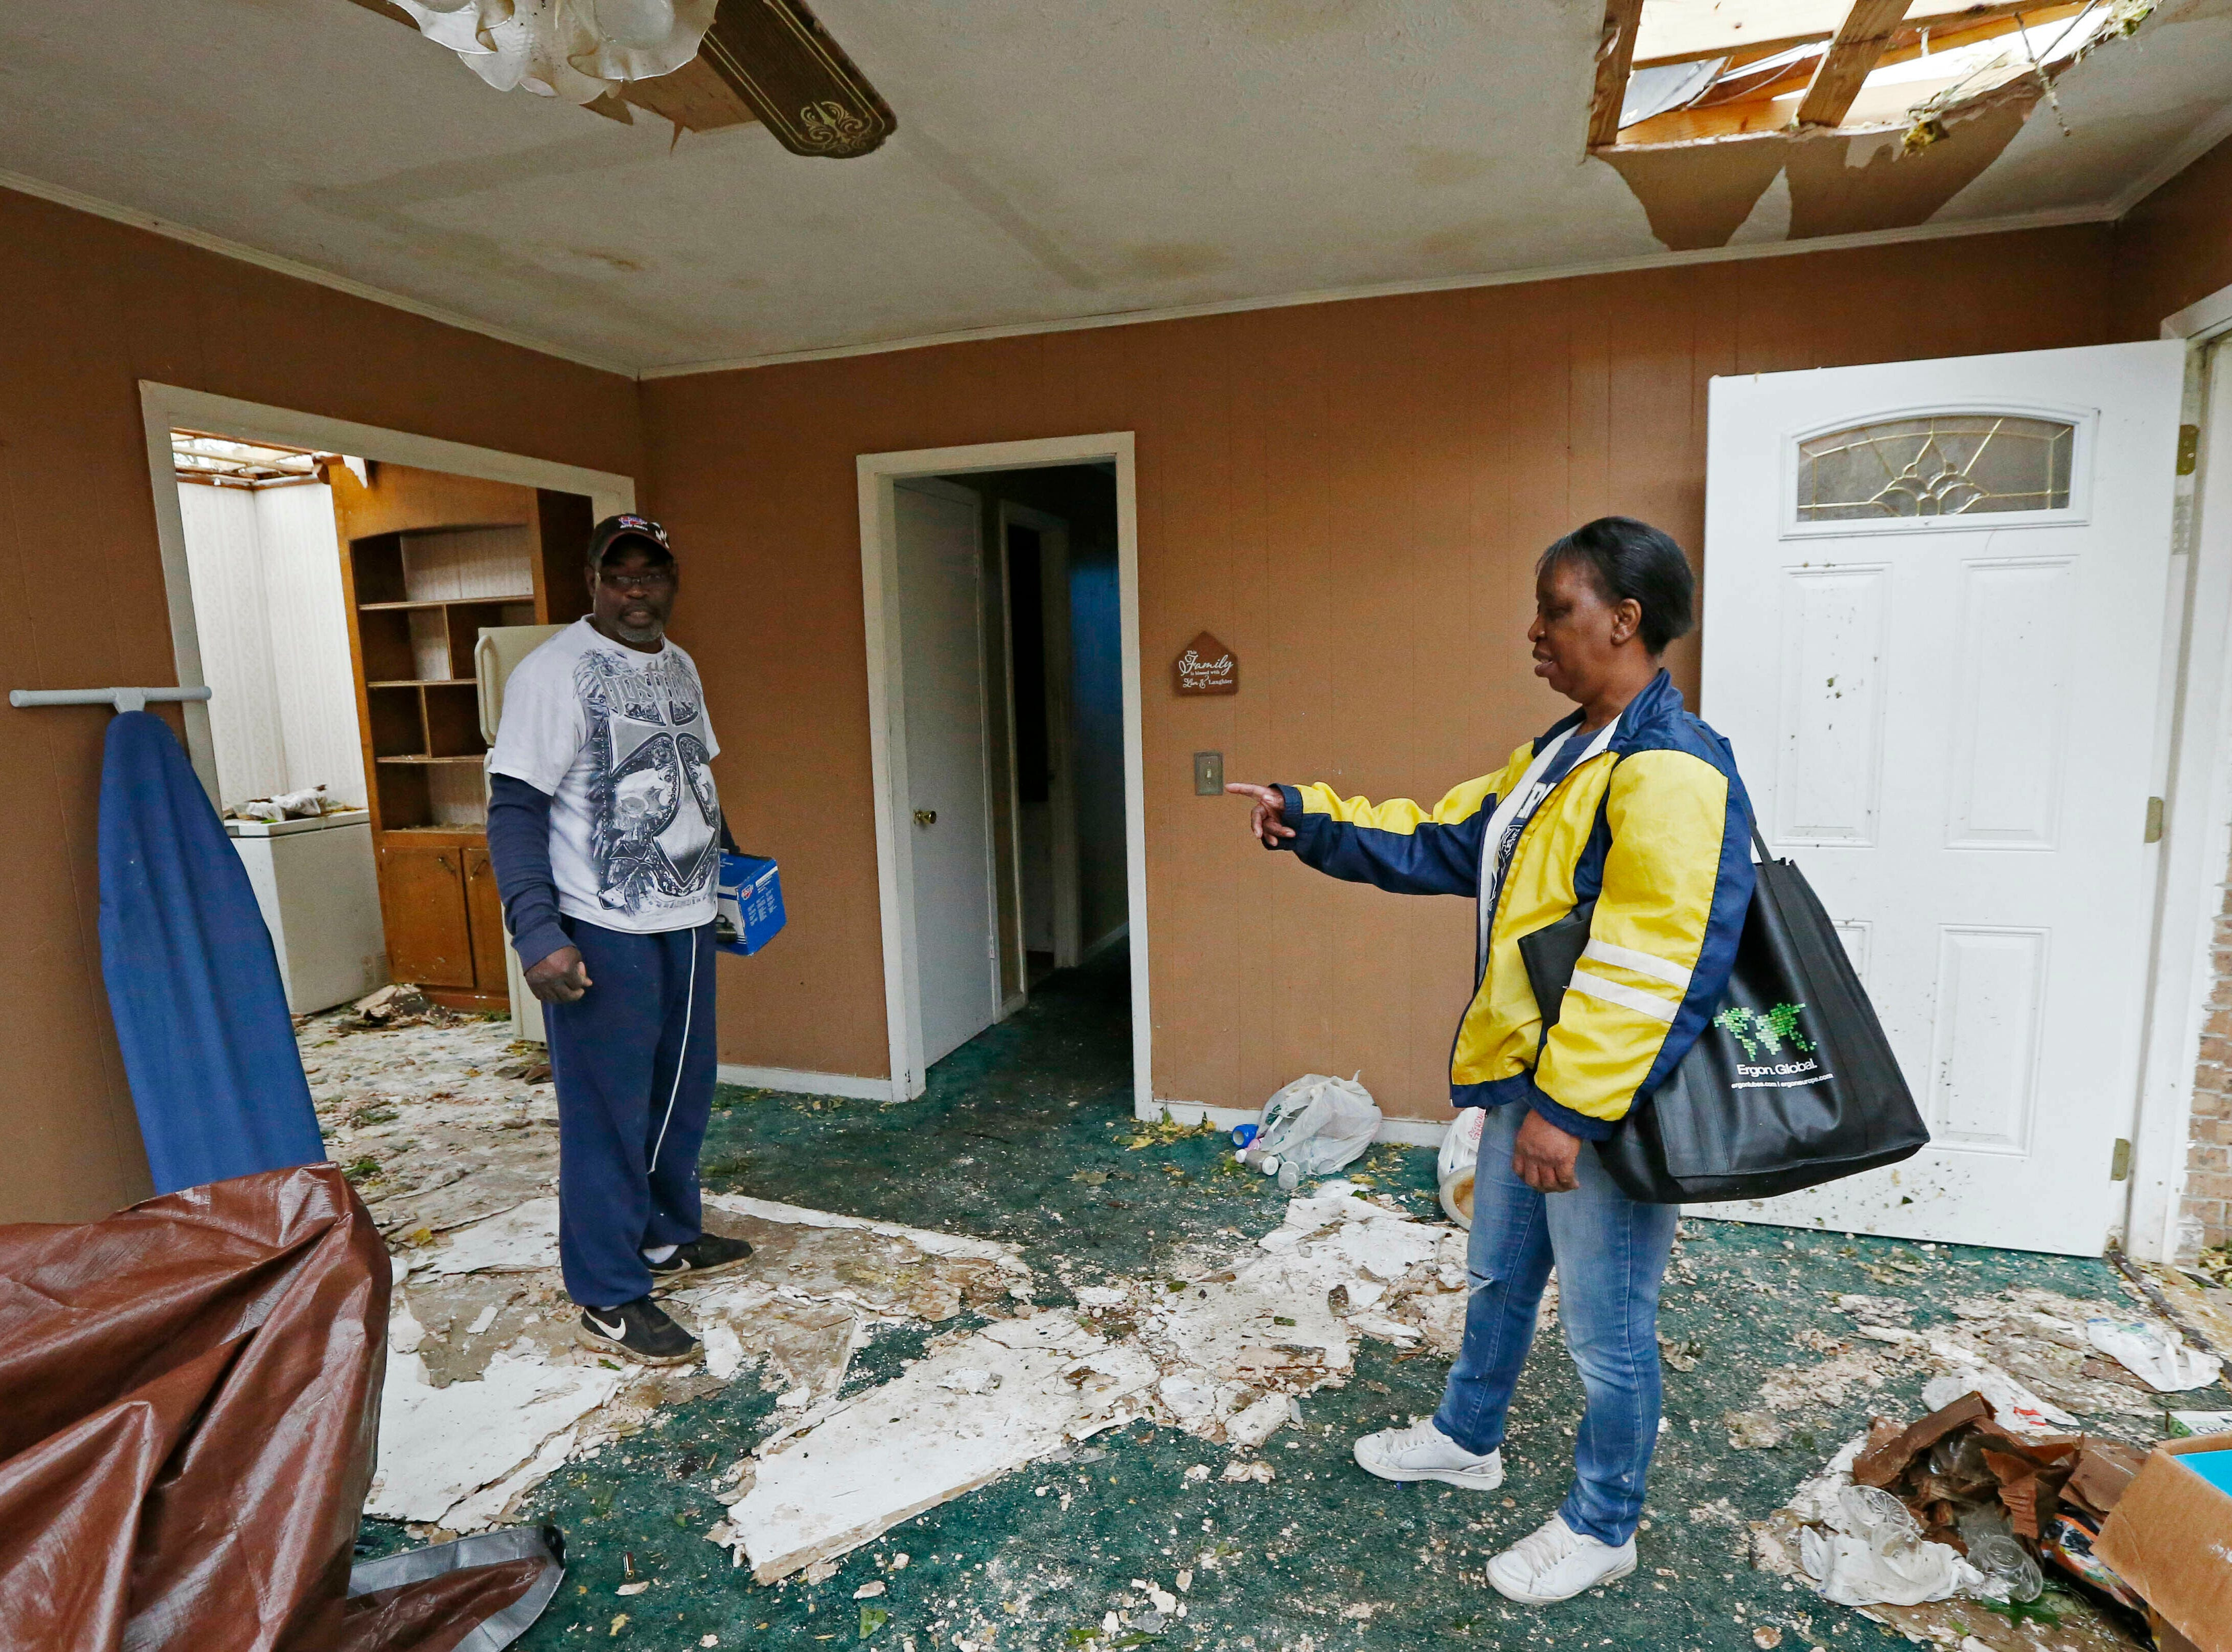 """""""Don't forget that ironing board,"""" calls out Morton, Miss., resident Sandra Toney, right to a friend as she tries to remove all salvageable items from her house, Friday, April 19, 2019, as she and other area residents begin the long road of physical recovery from being hit by a possible tornado, Thursday afternoon. Strong storms again roared across the South on Thursday, topping trees and leaving a variety of damage in Mississippi, Louisiana and Texas. (AP Photo/Rogelio V. Solis)"""